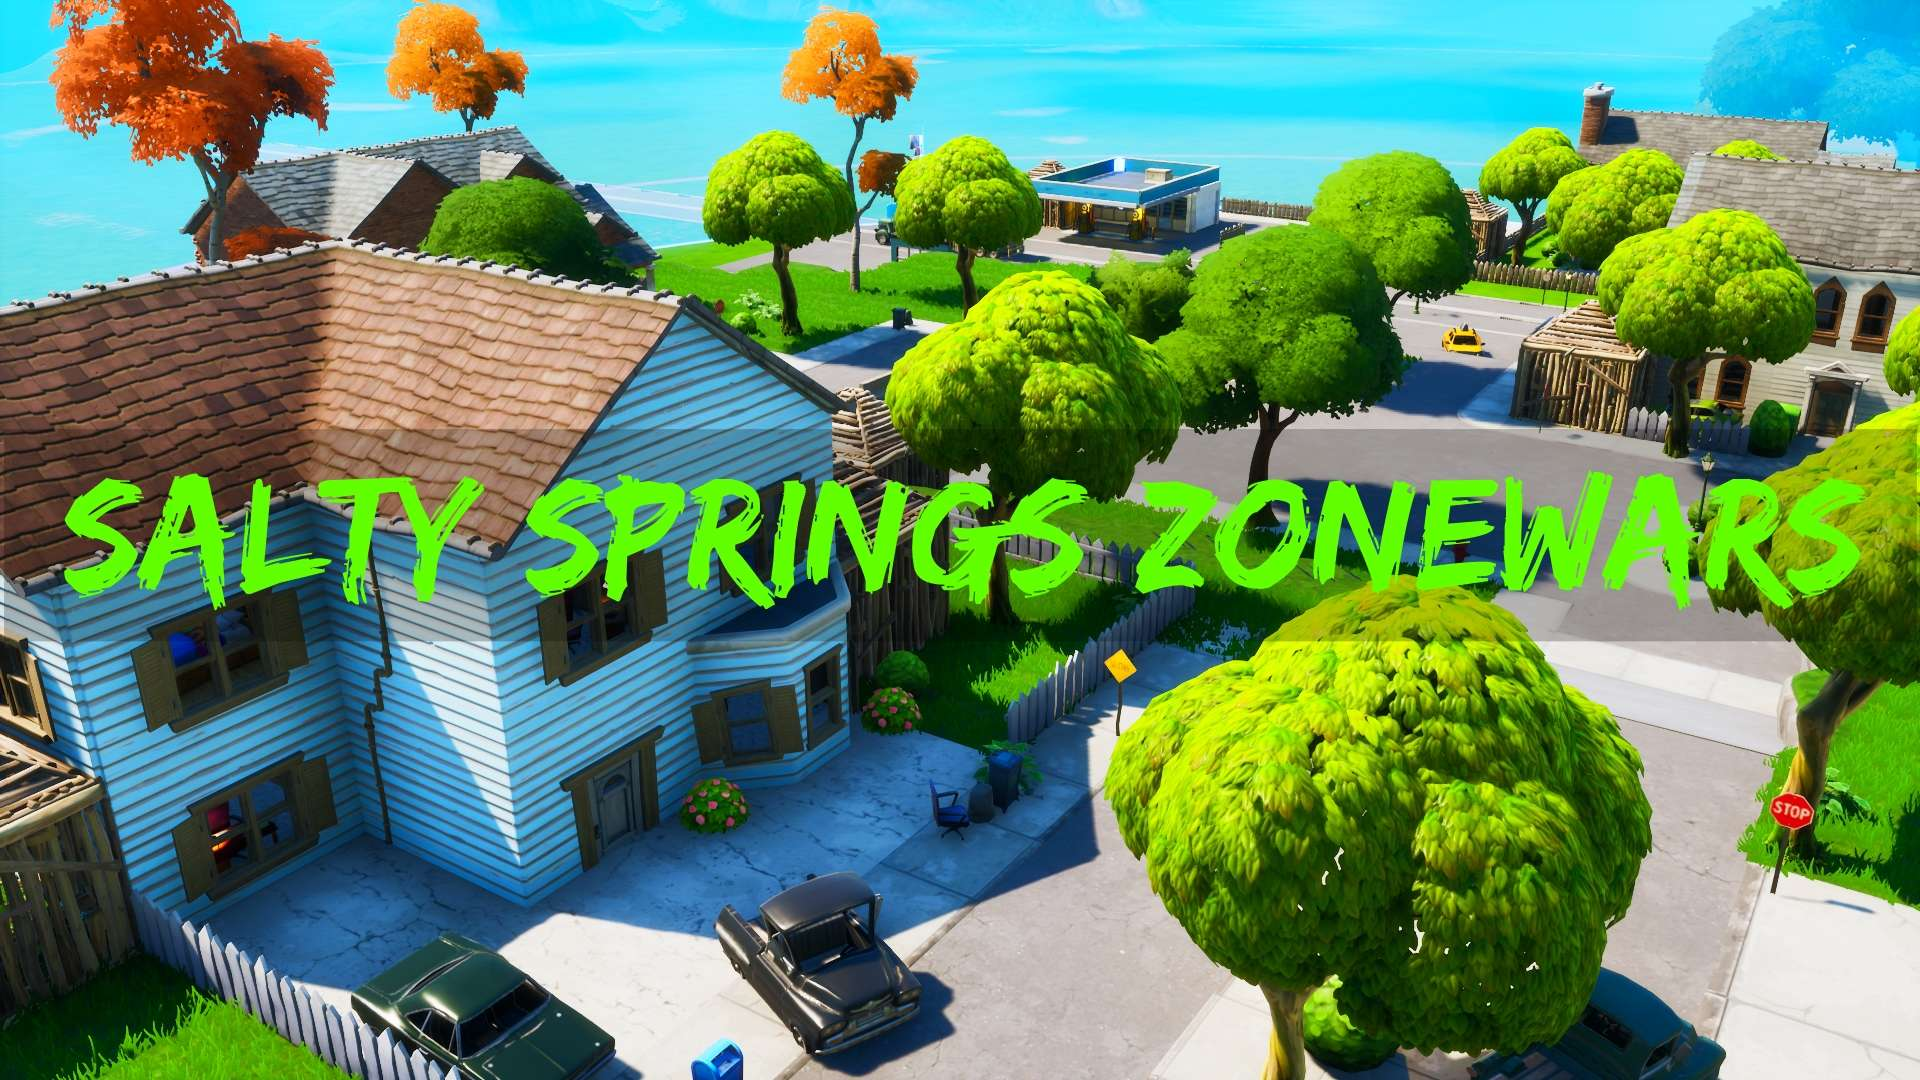 REALISTIC SALTY SPRINGS ZONE WARS